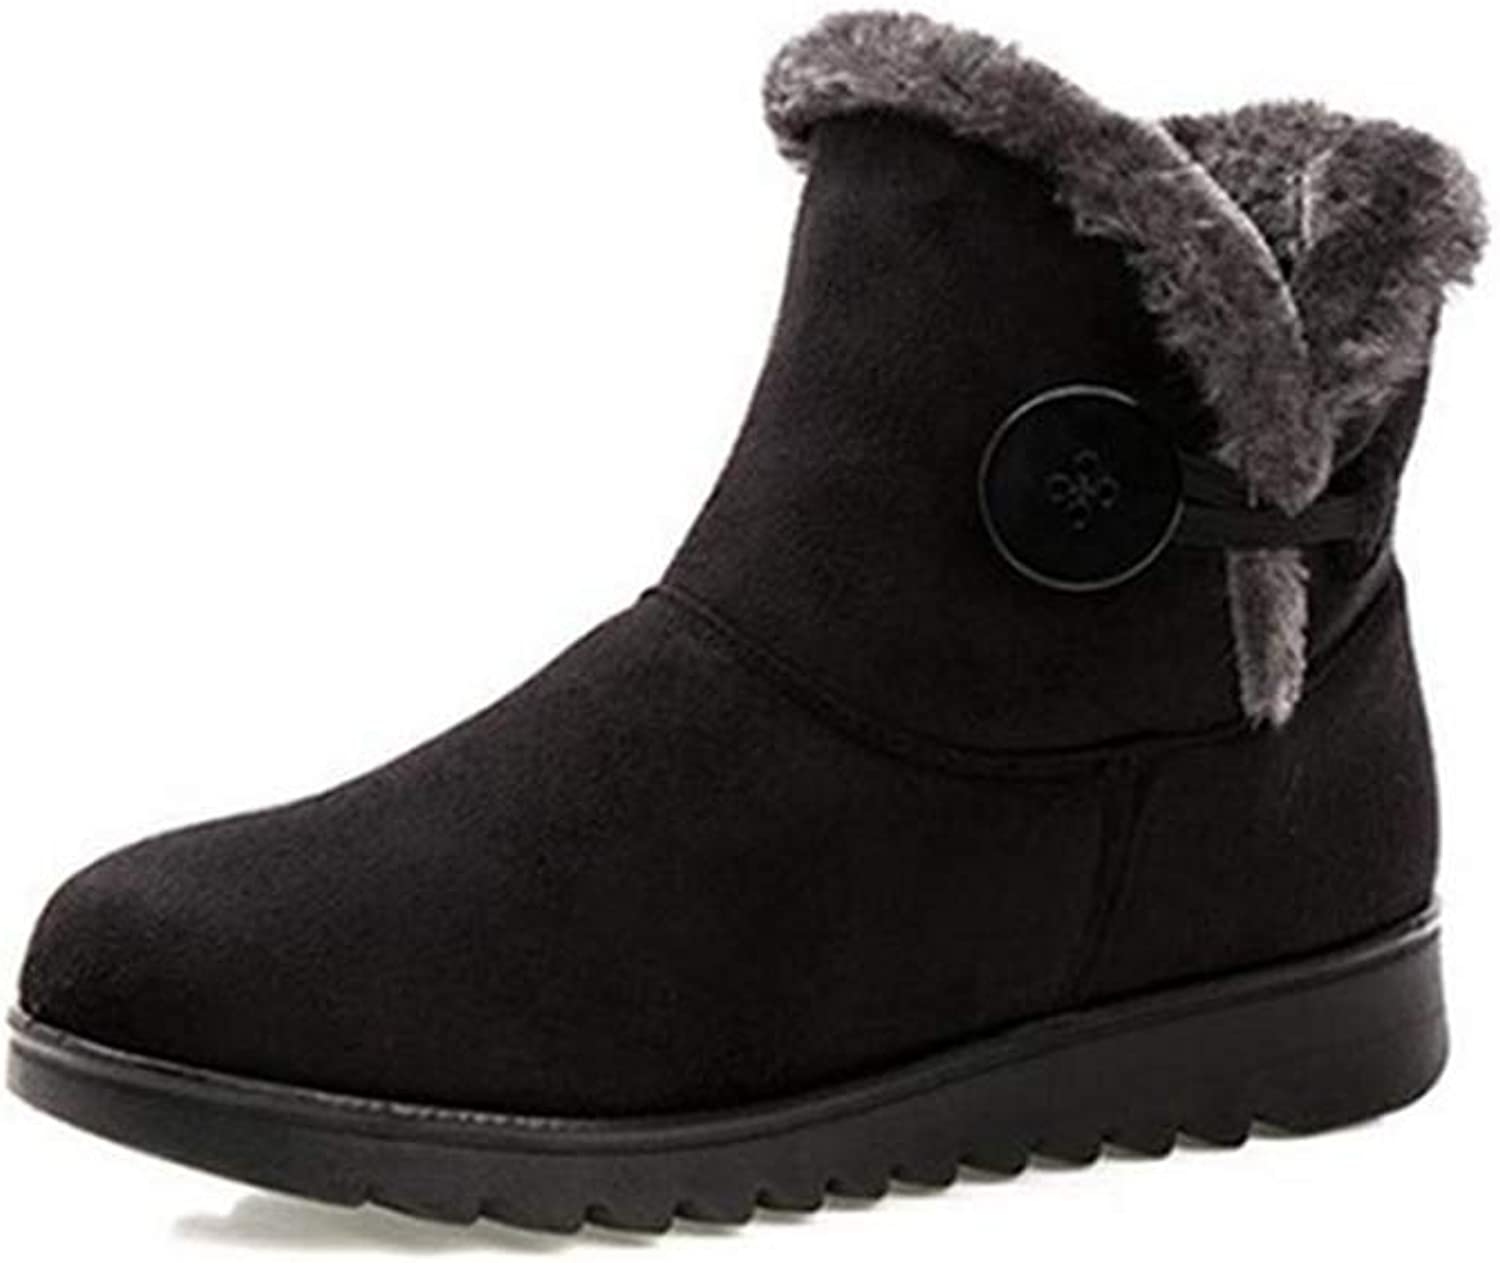 Fay Waters Women's Classics Winter Snow Boots Fur Lined Non-Slip Warm shoes Outdoor Ankle Booties